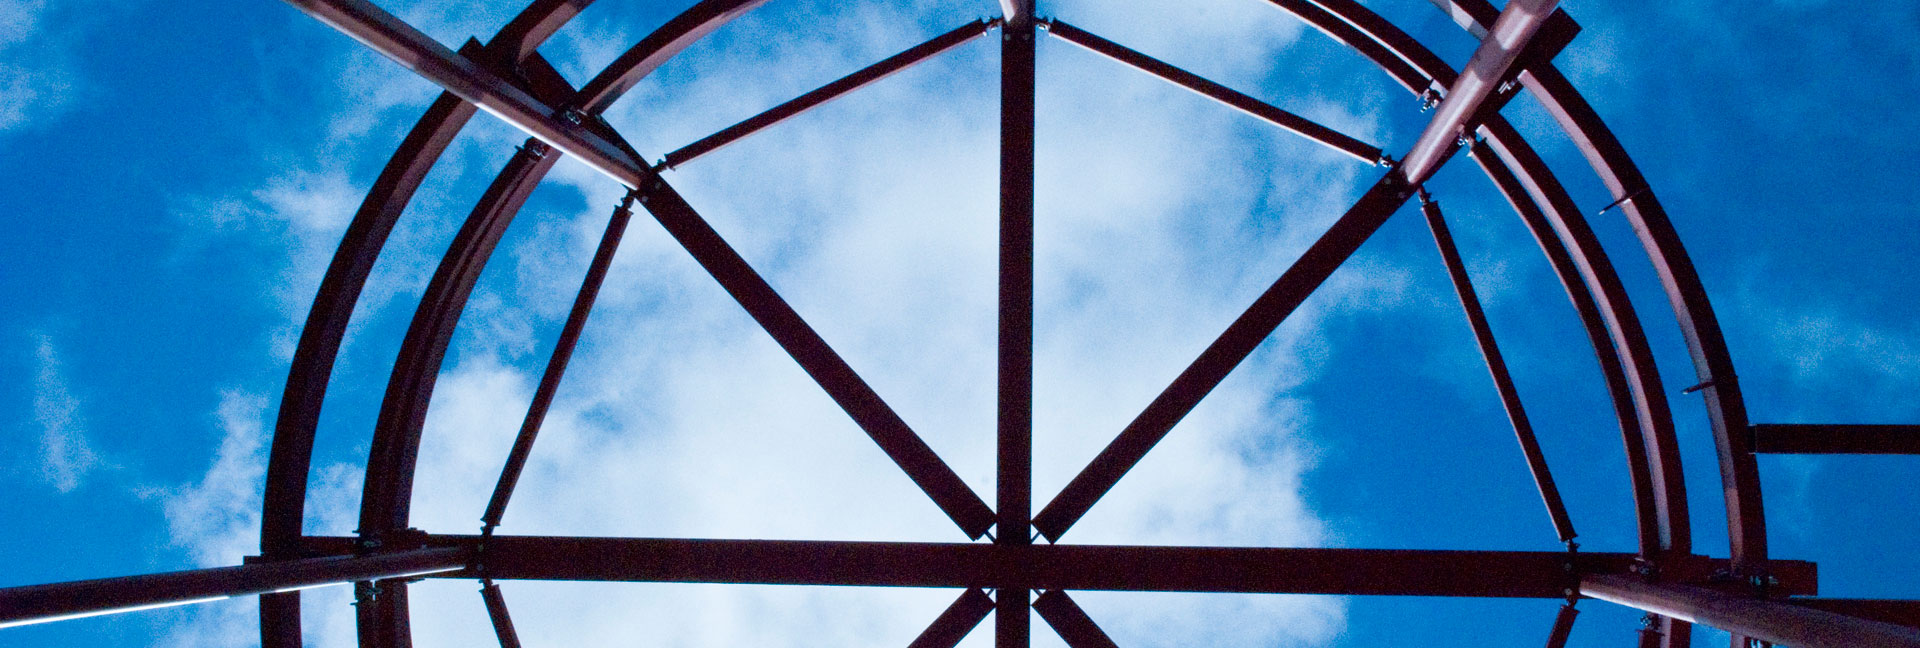 PACC Engineering Structural Steel Fabrication Northern Ireland